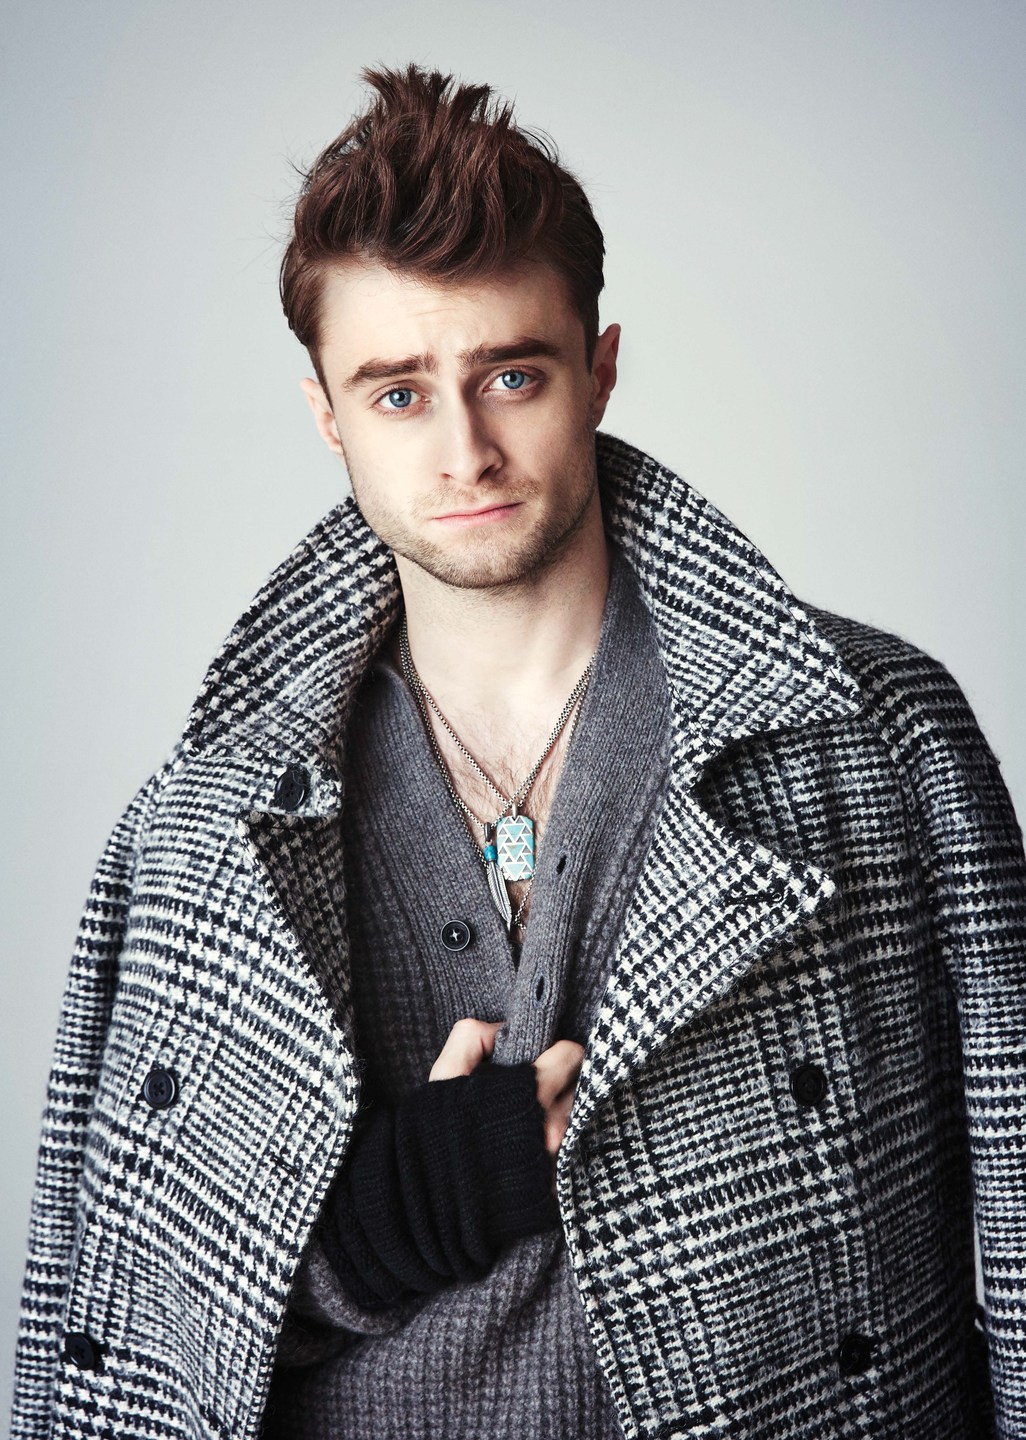 MOST BEAUTIFUL MEN: DANIEL RADCLIFFE Daniel Radcliffe